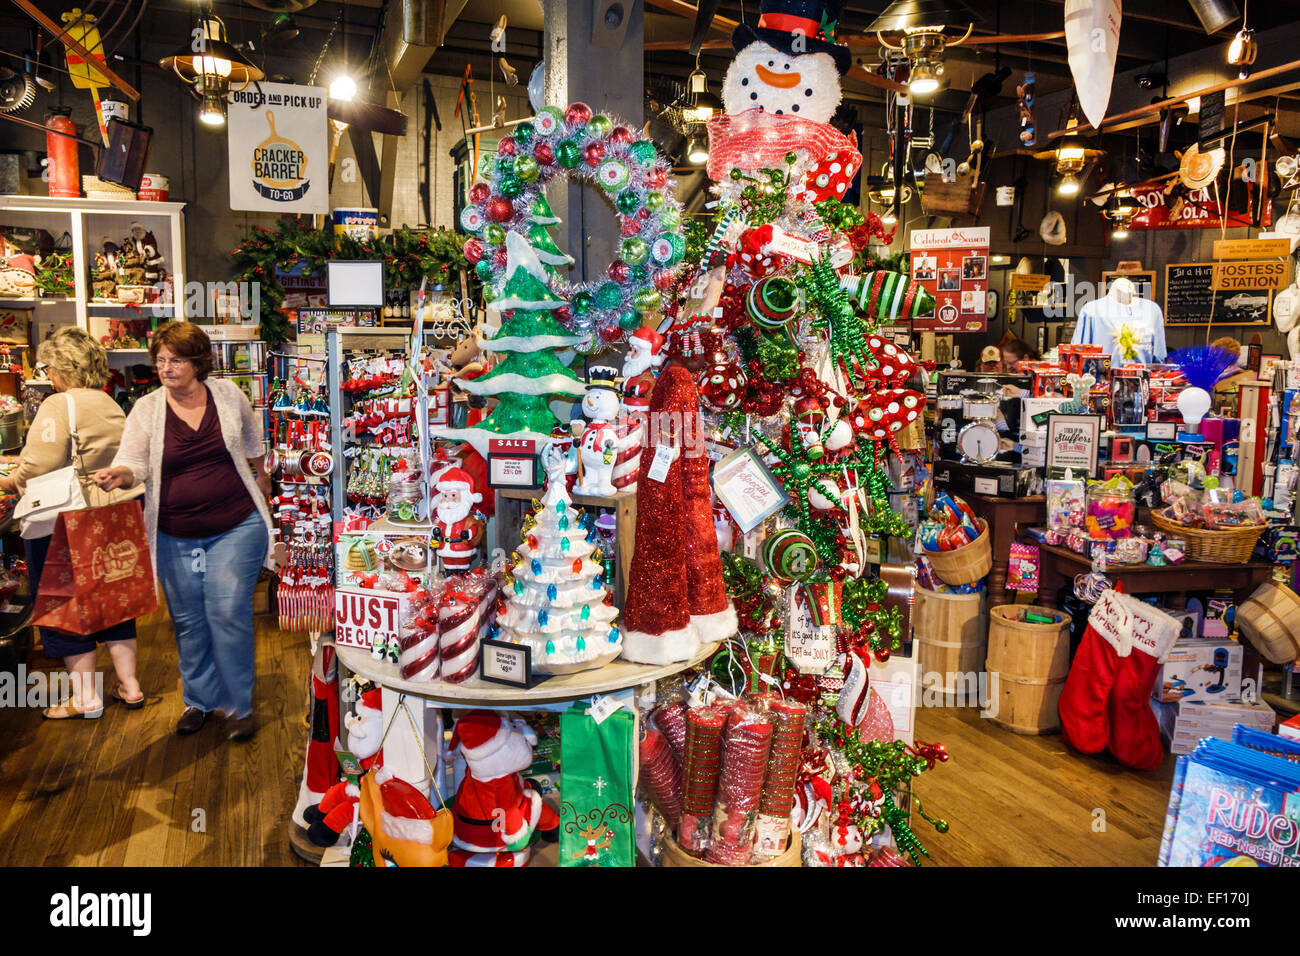 Cracker Barrel Christmas.Vero Beach Florida Cracker Barrel Country Store Shopping